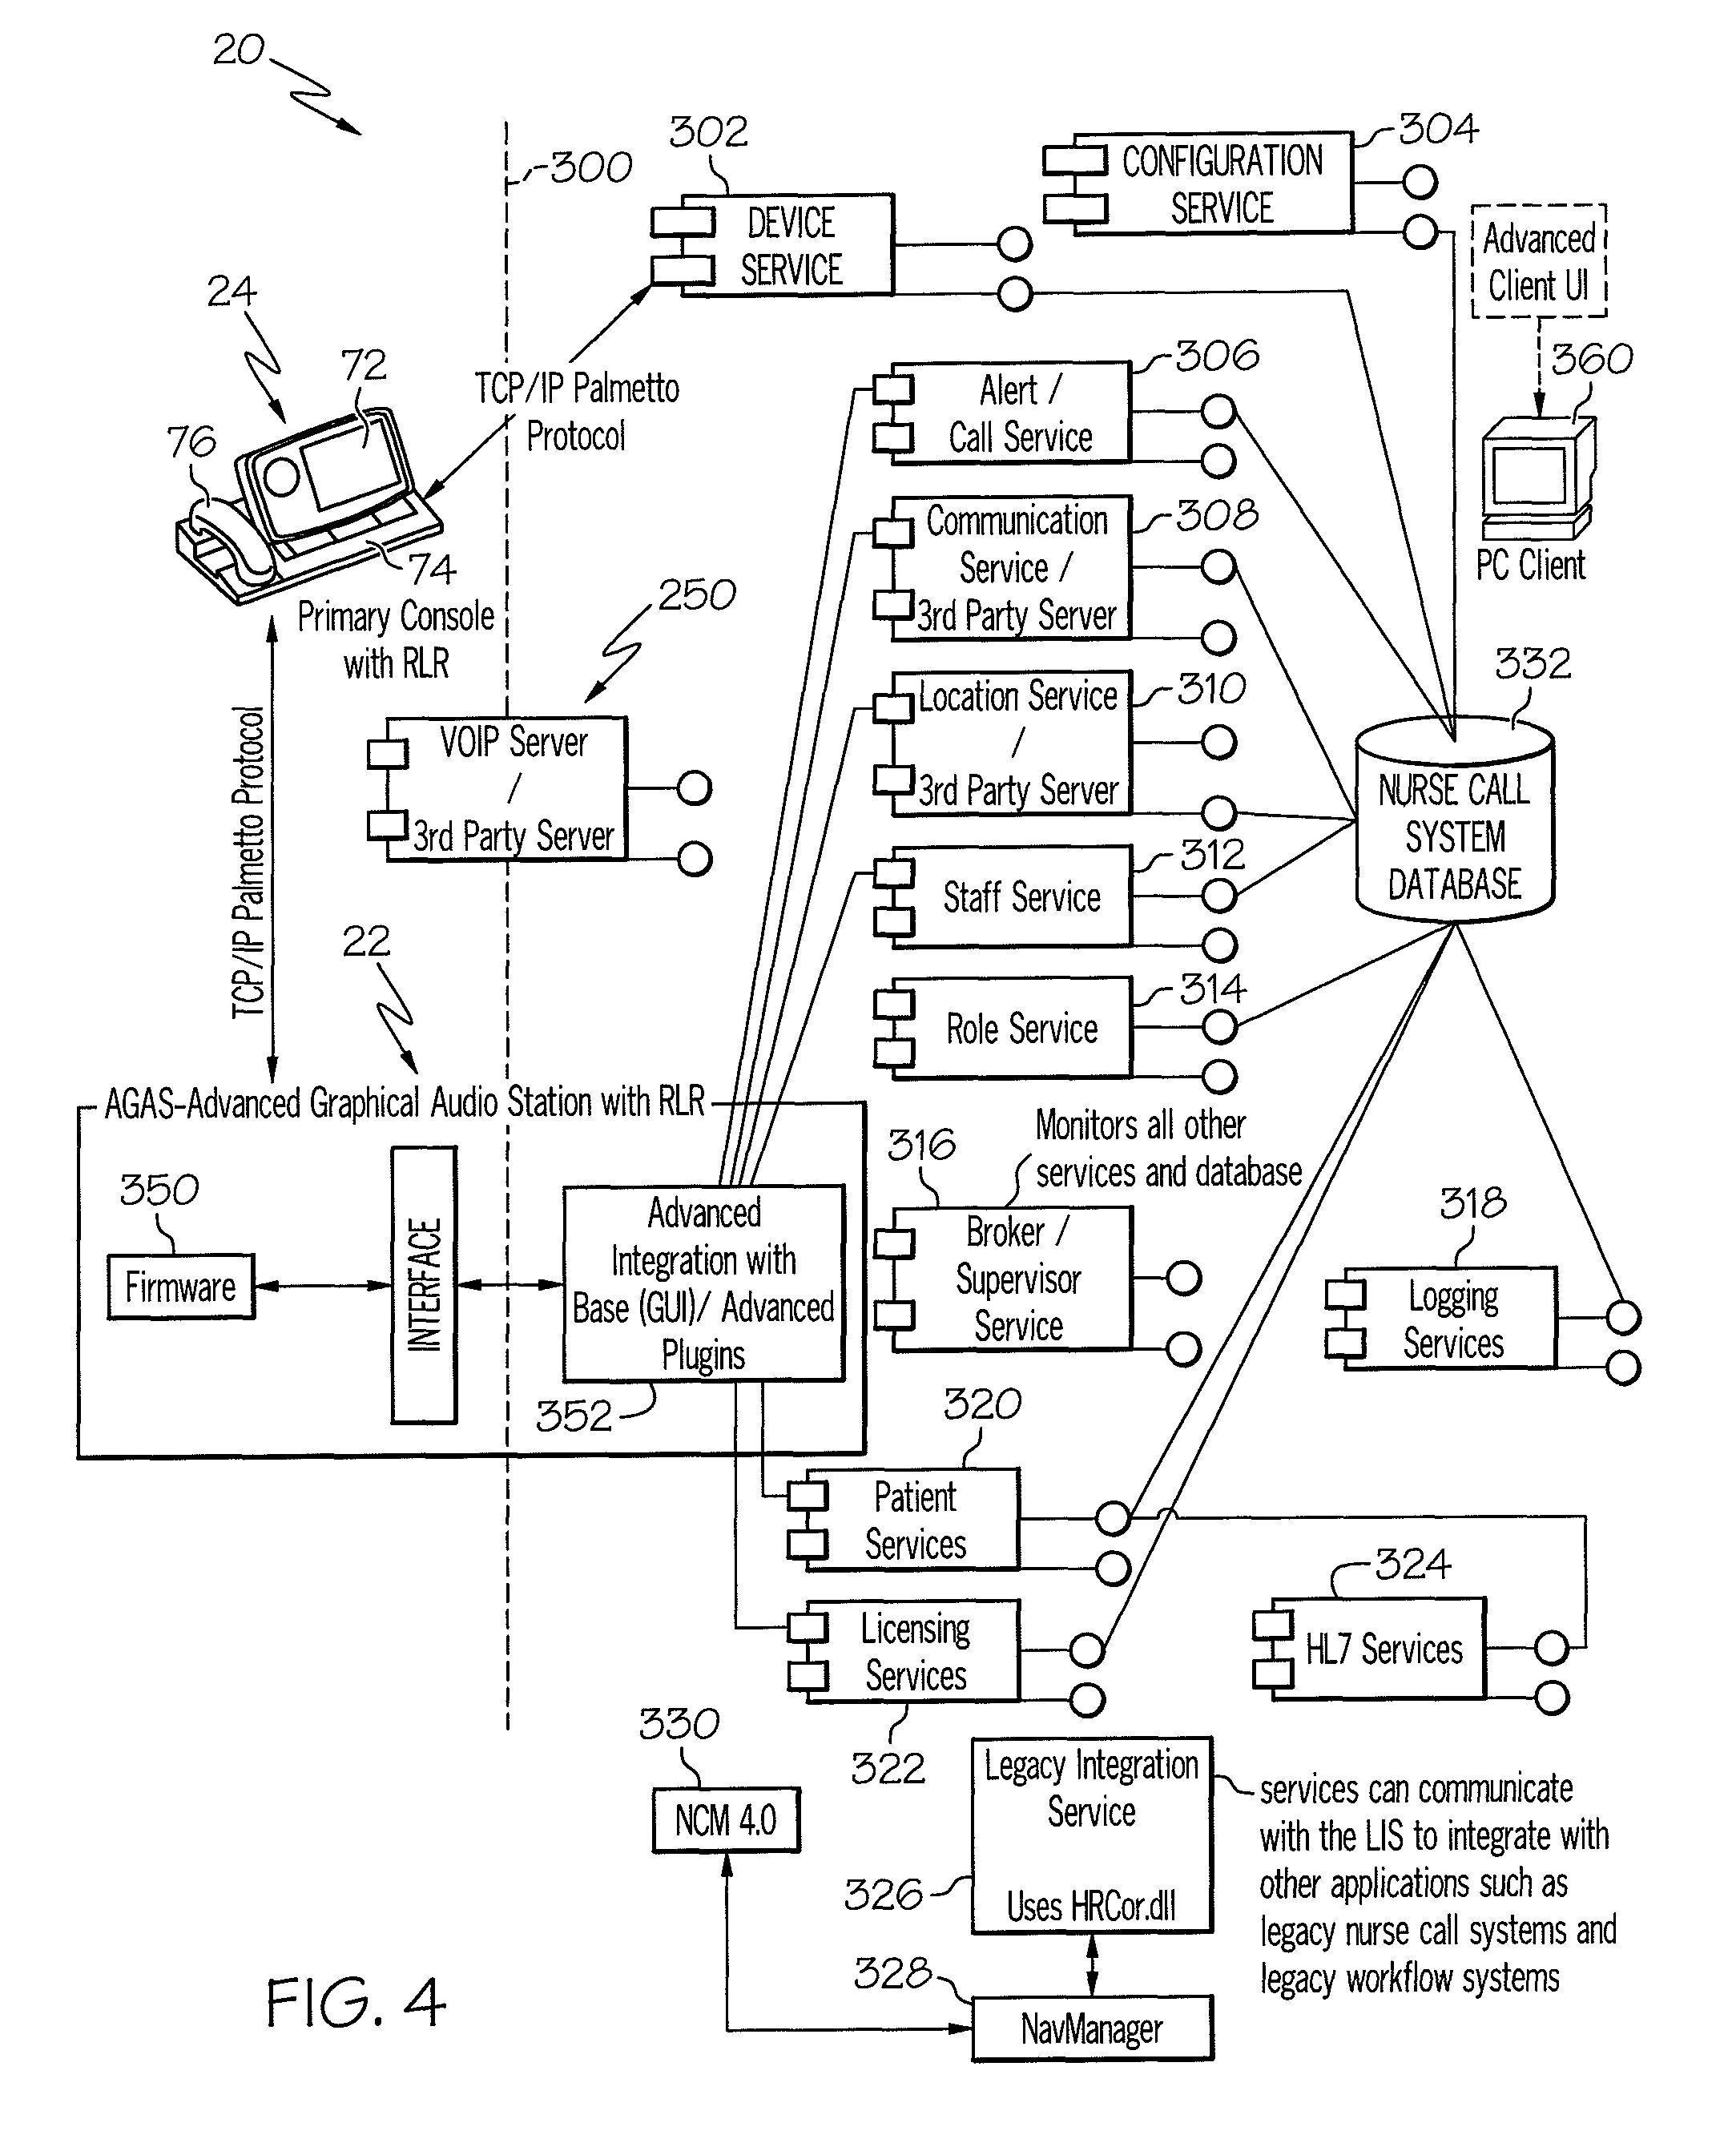 nurse call system wiring diagram Collection-Wiring Diagram for Nurse Call System New Nurse Call Systems Wiring Diagram 6-a